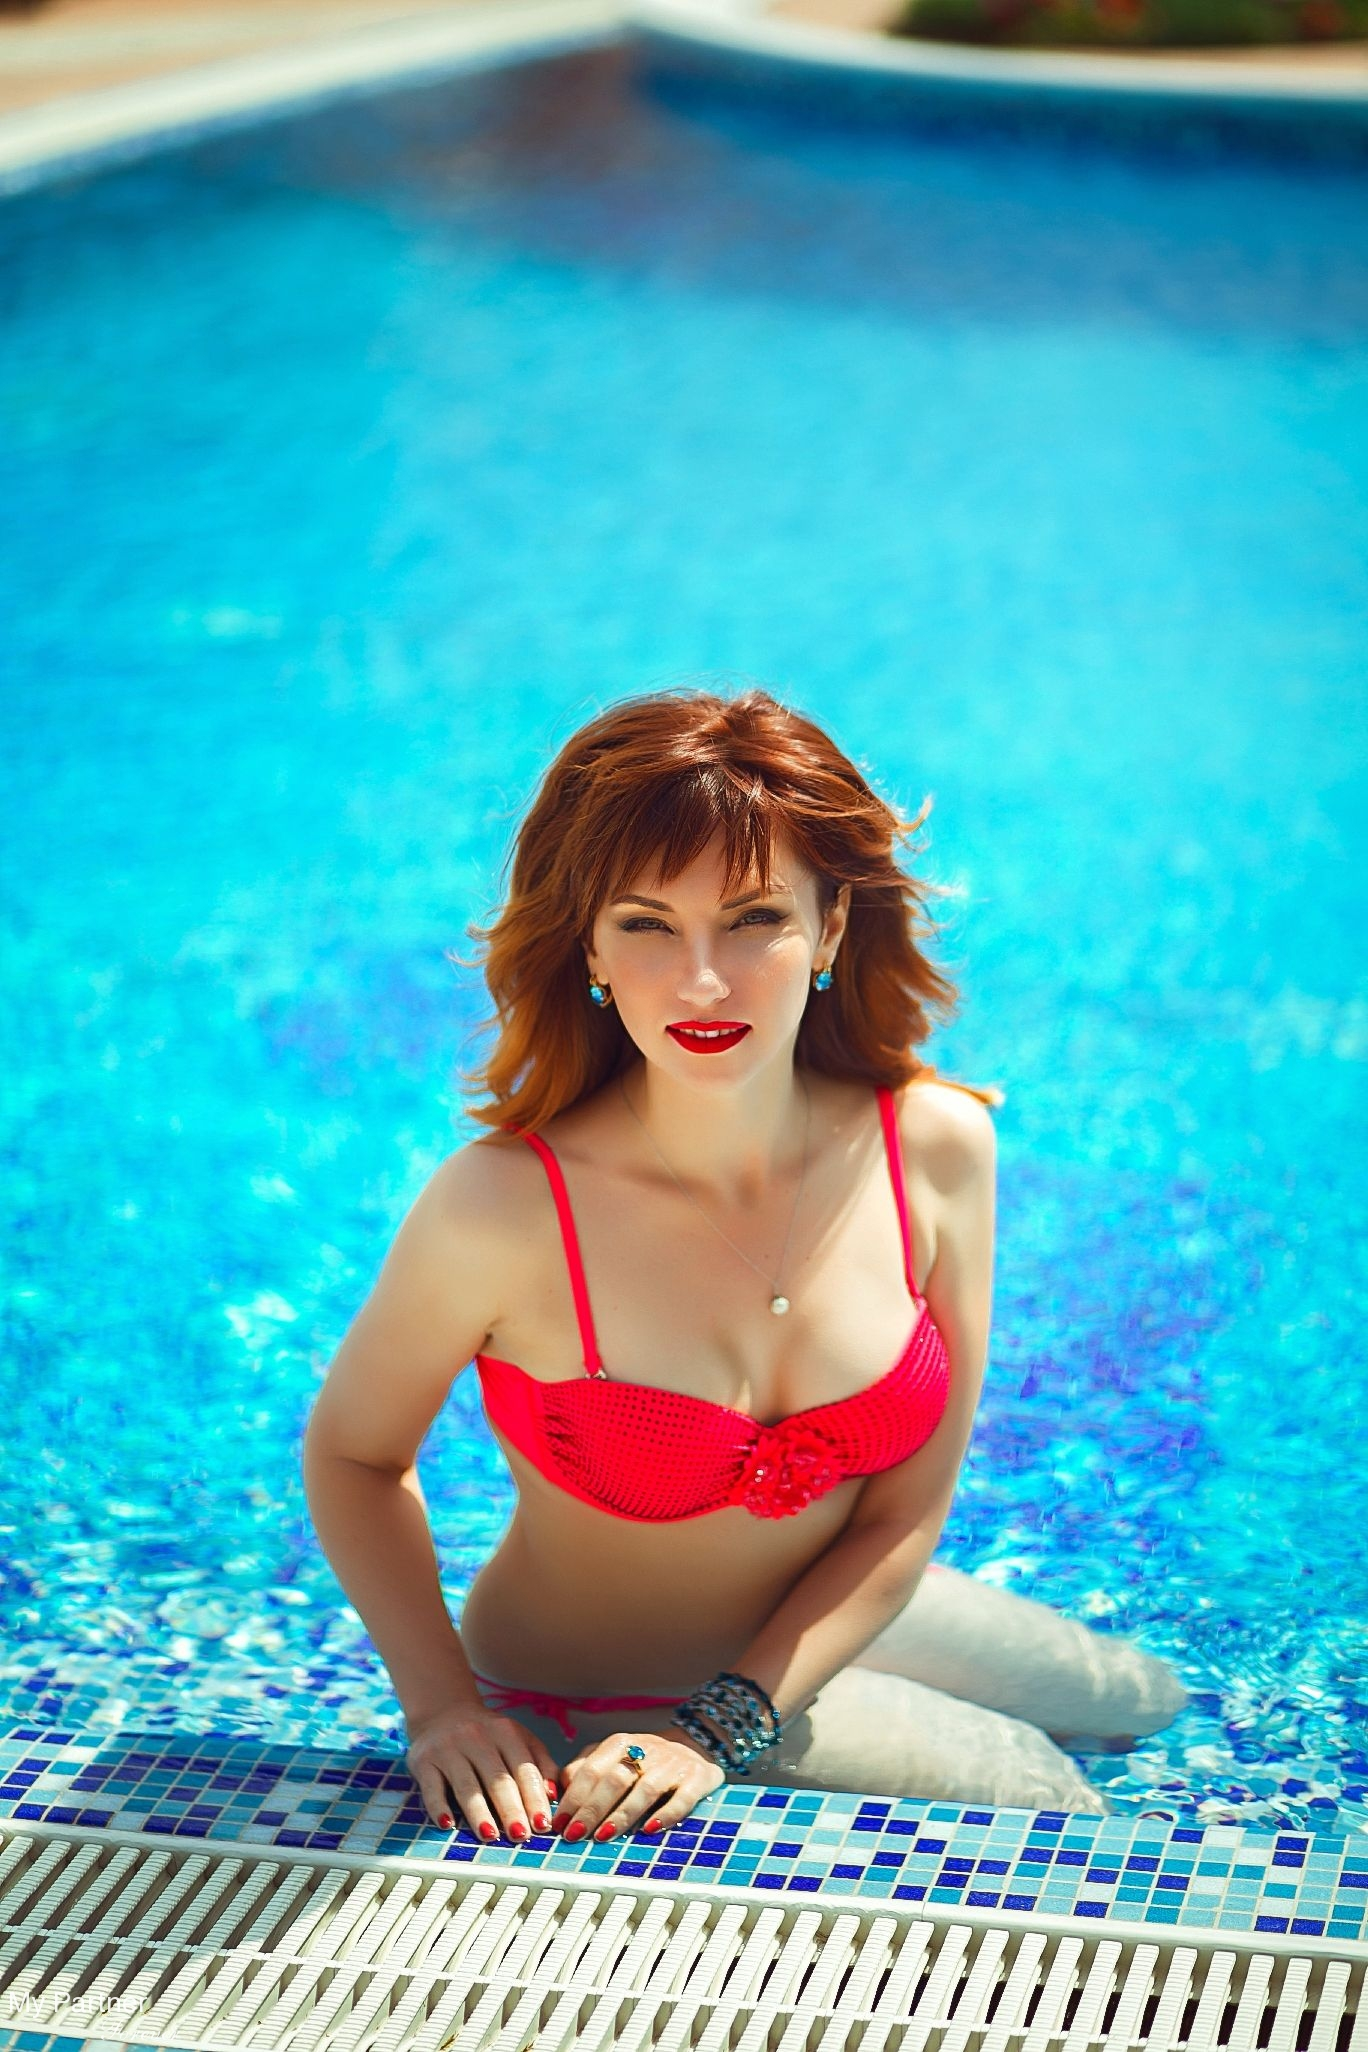 vanlue mature women personals Sitalong is a free online dating site where you meet mature women, seeking romantic or platonic relationships anonymously rate mature women in your area, and find out who's interested in.